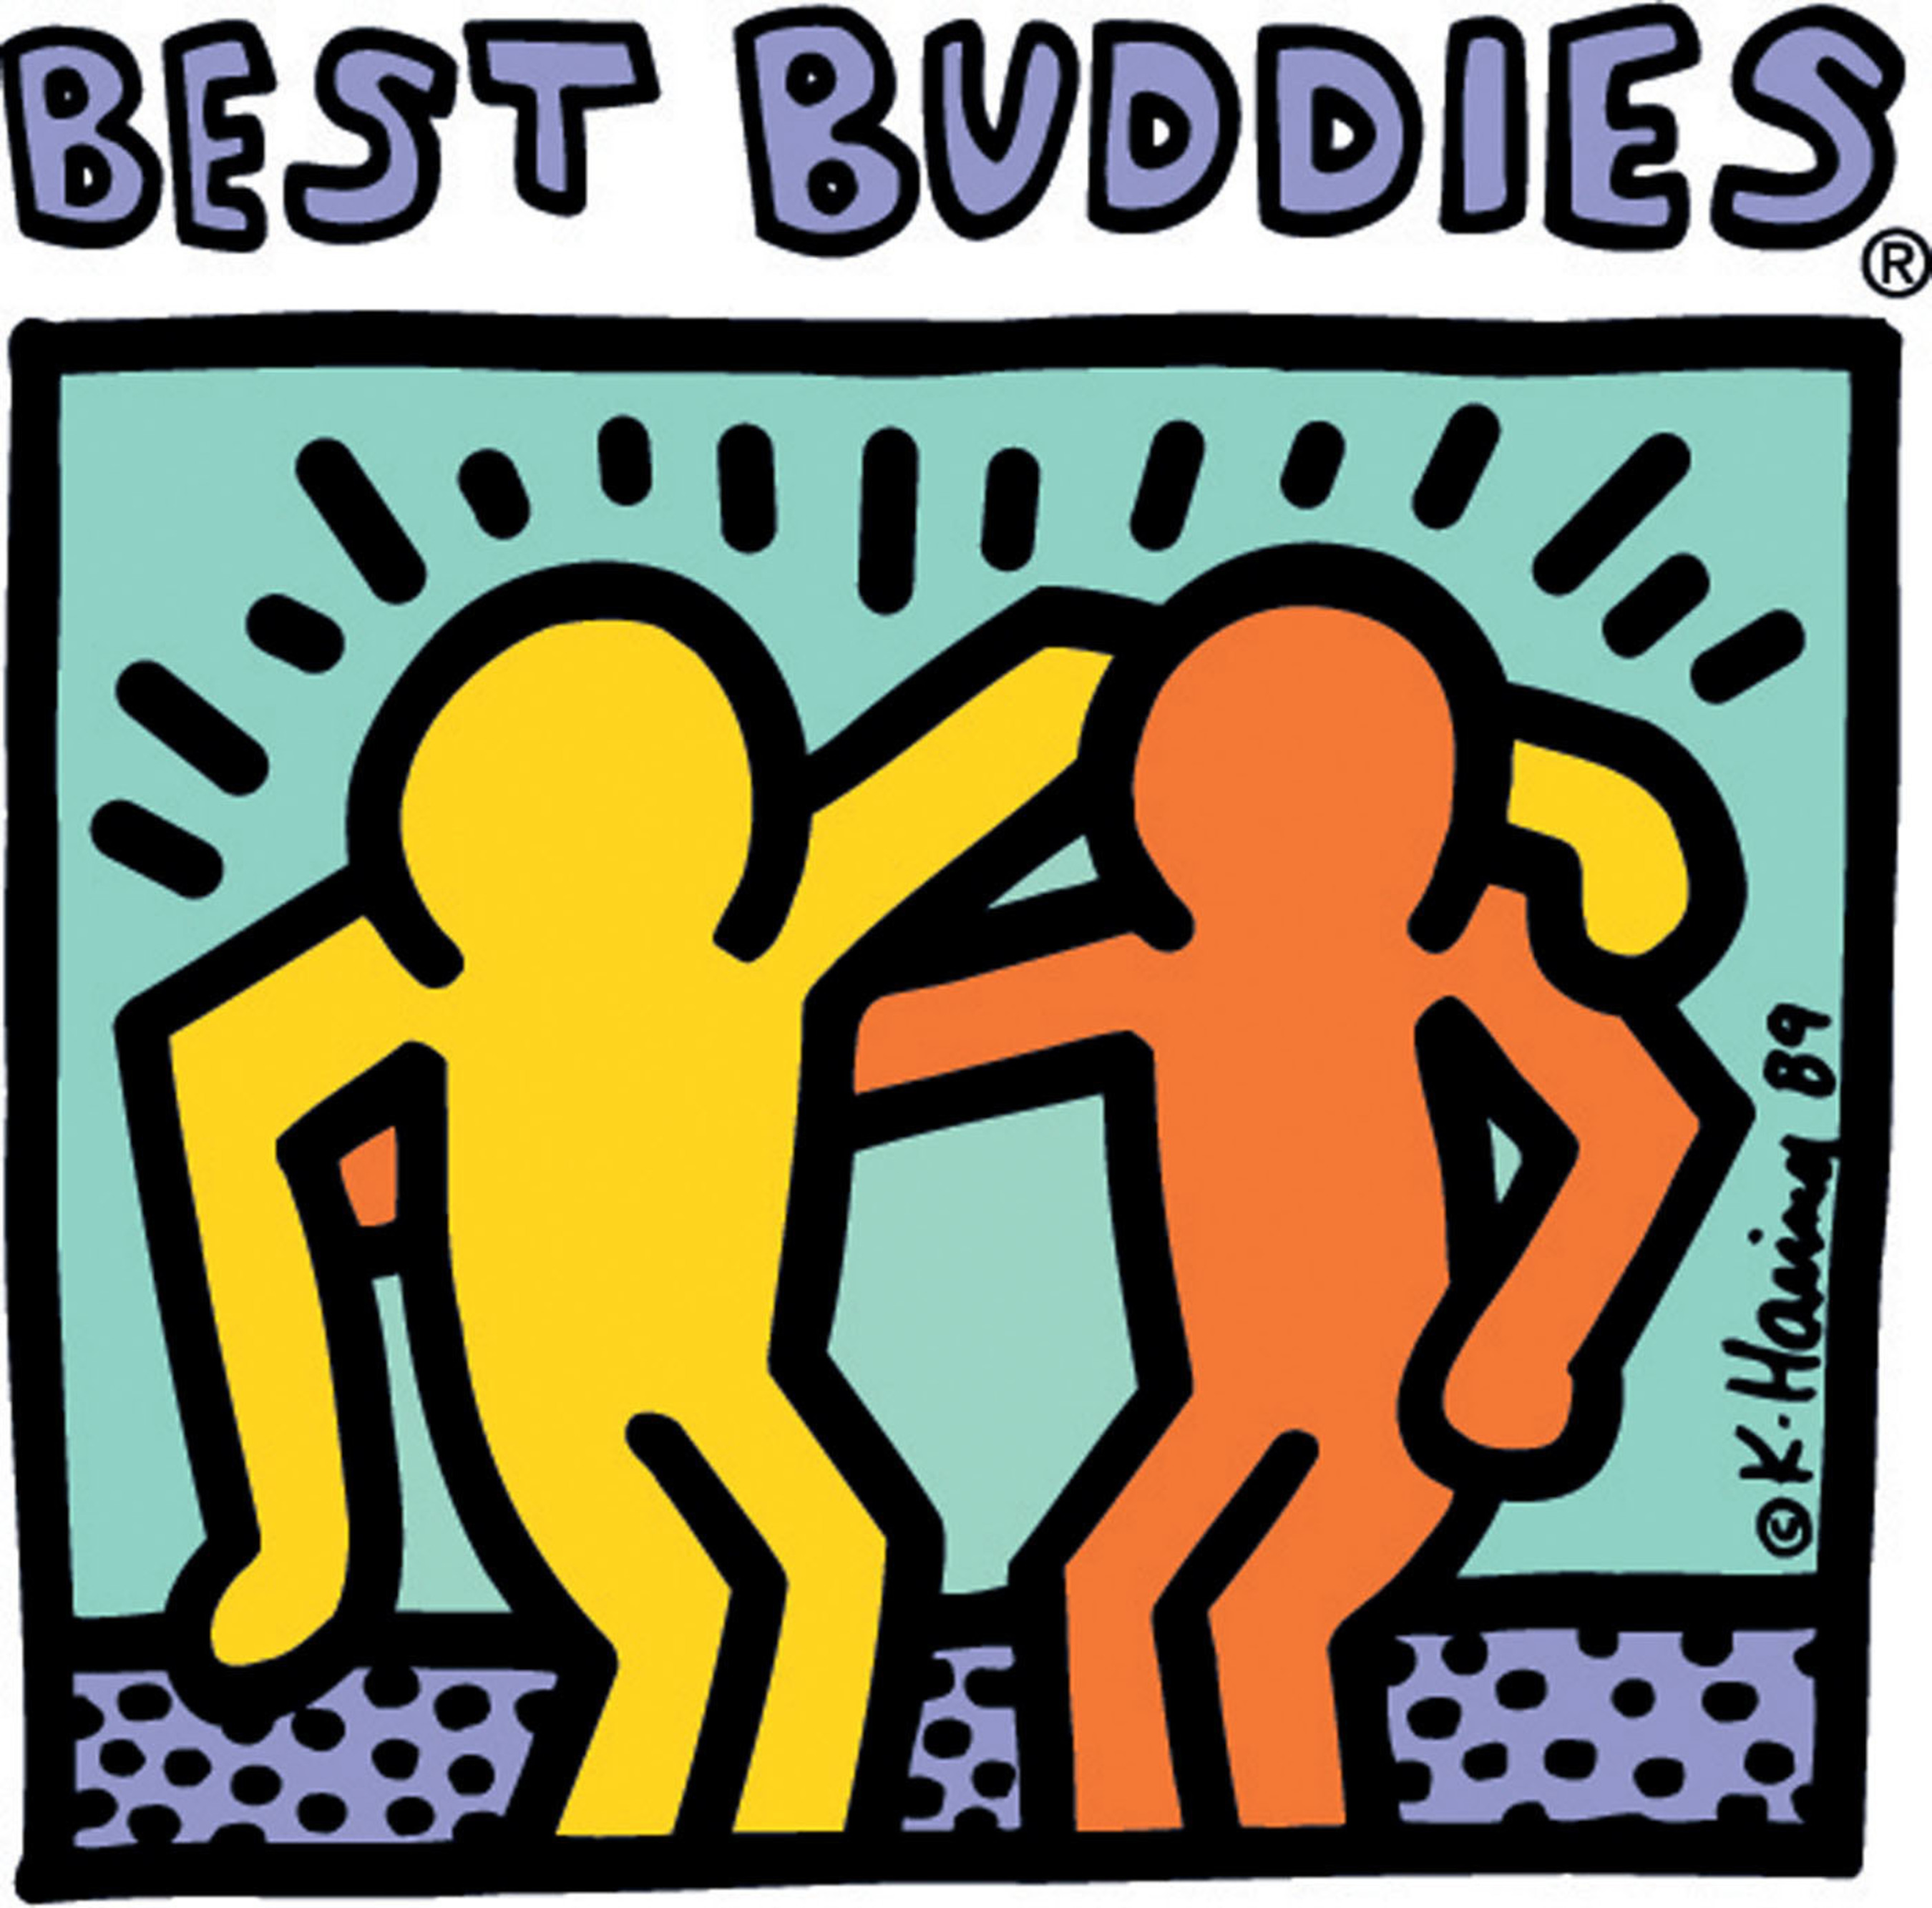 19th Annual Best Buddies Miami Gala: BACK TO SCHOOL NIGHT